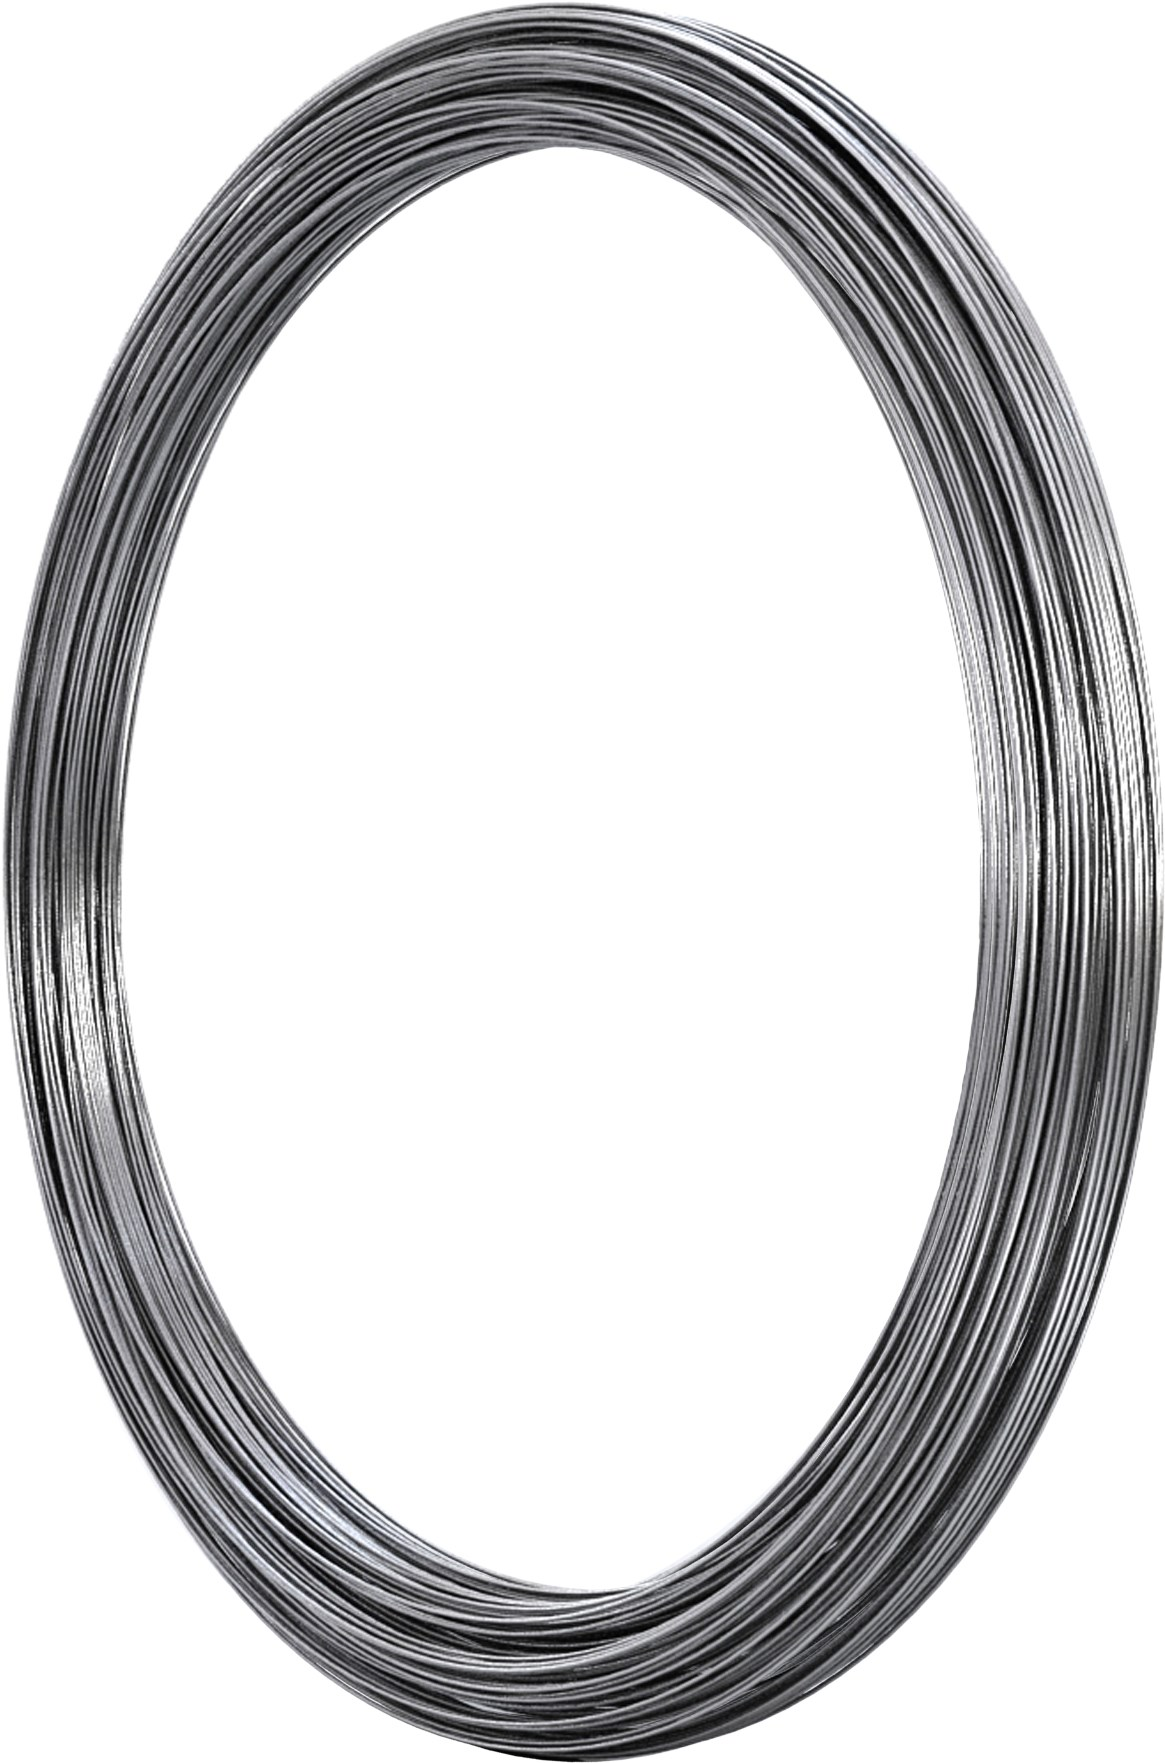 Capillary Tubes In Stainless Steel Sandvik Materials